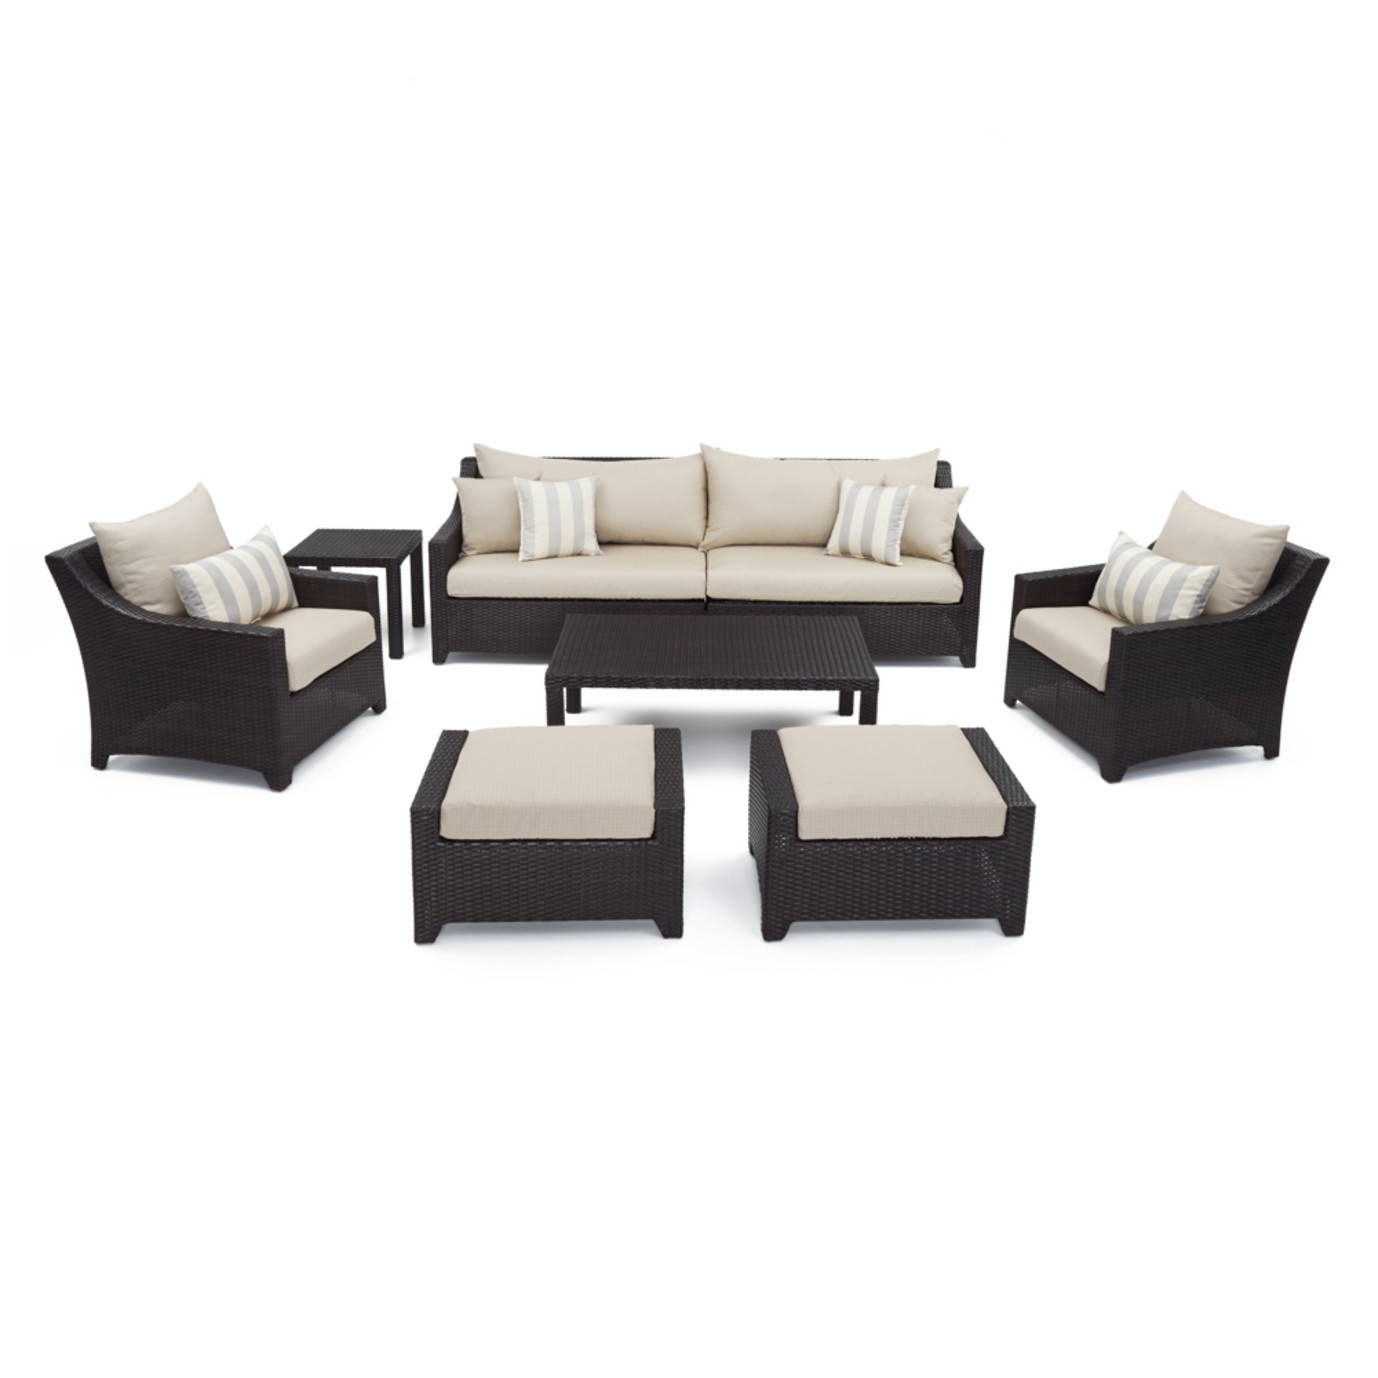 Deco™ 8pc Sofa Set with Furniture Covers - Slate Gray